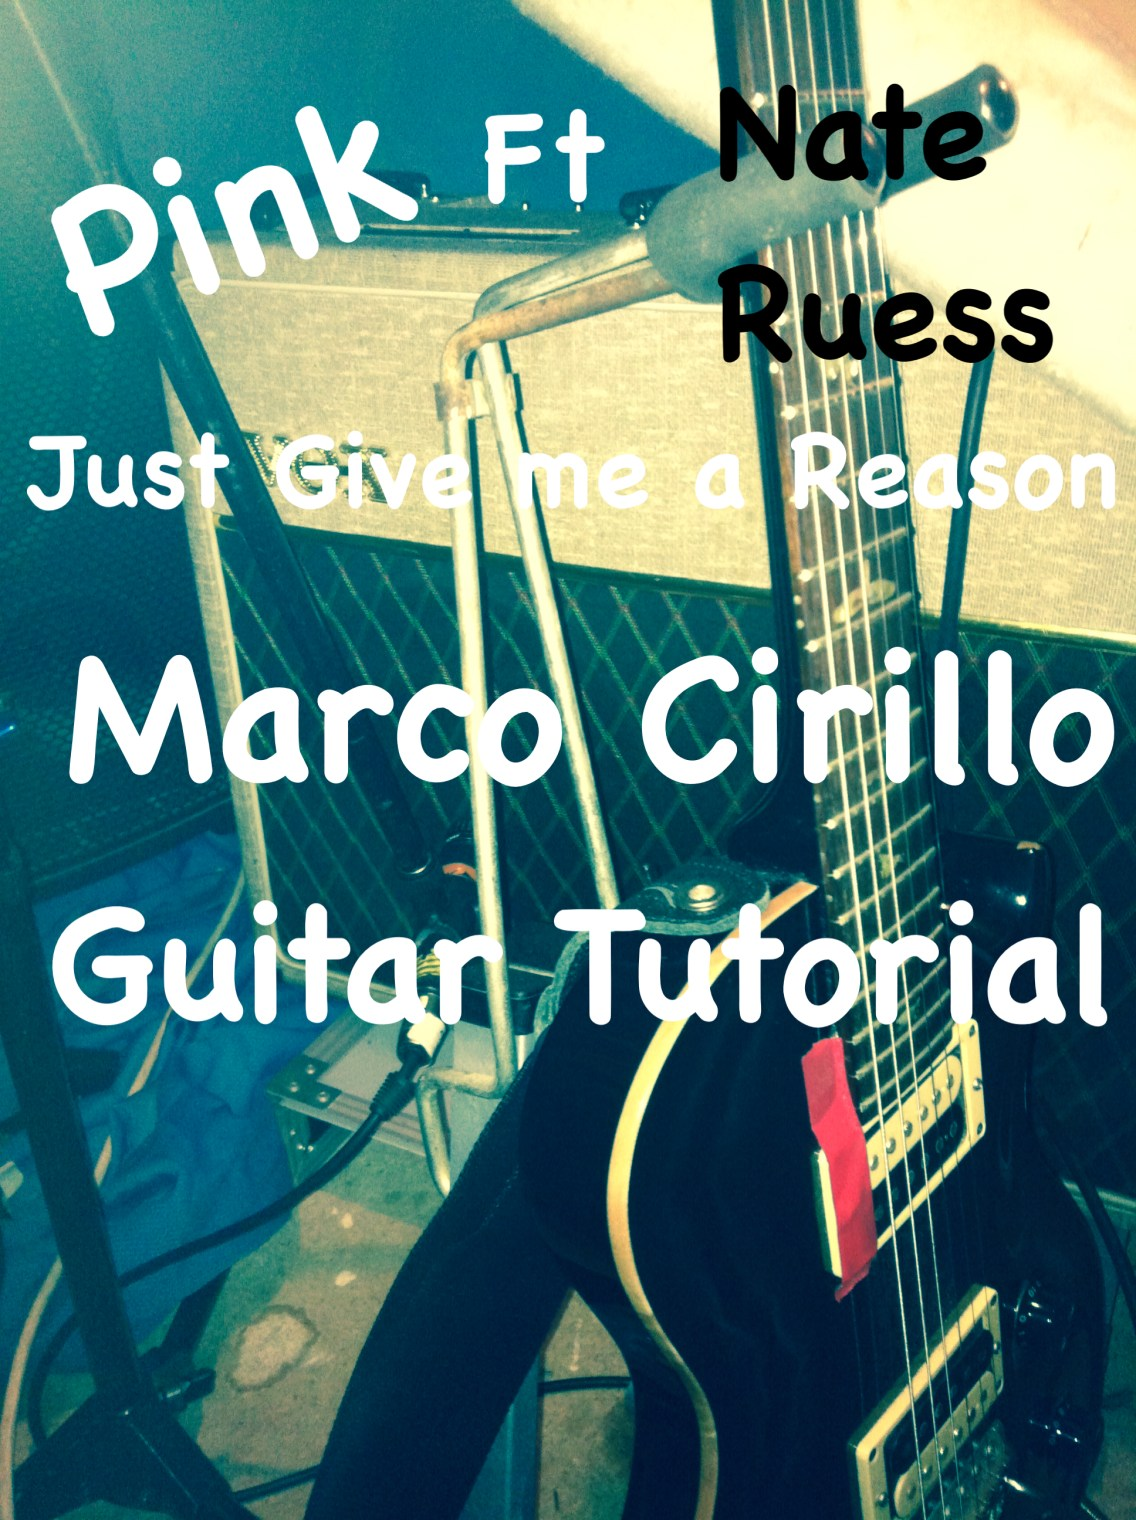 Pink Ft.Nate Ruess Just Give Me a Reason Guitar Lesson Chords FREE TAB - Guitar Tutorial Easy Song - Learn Guitar In London - Guitar Academy in London -